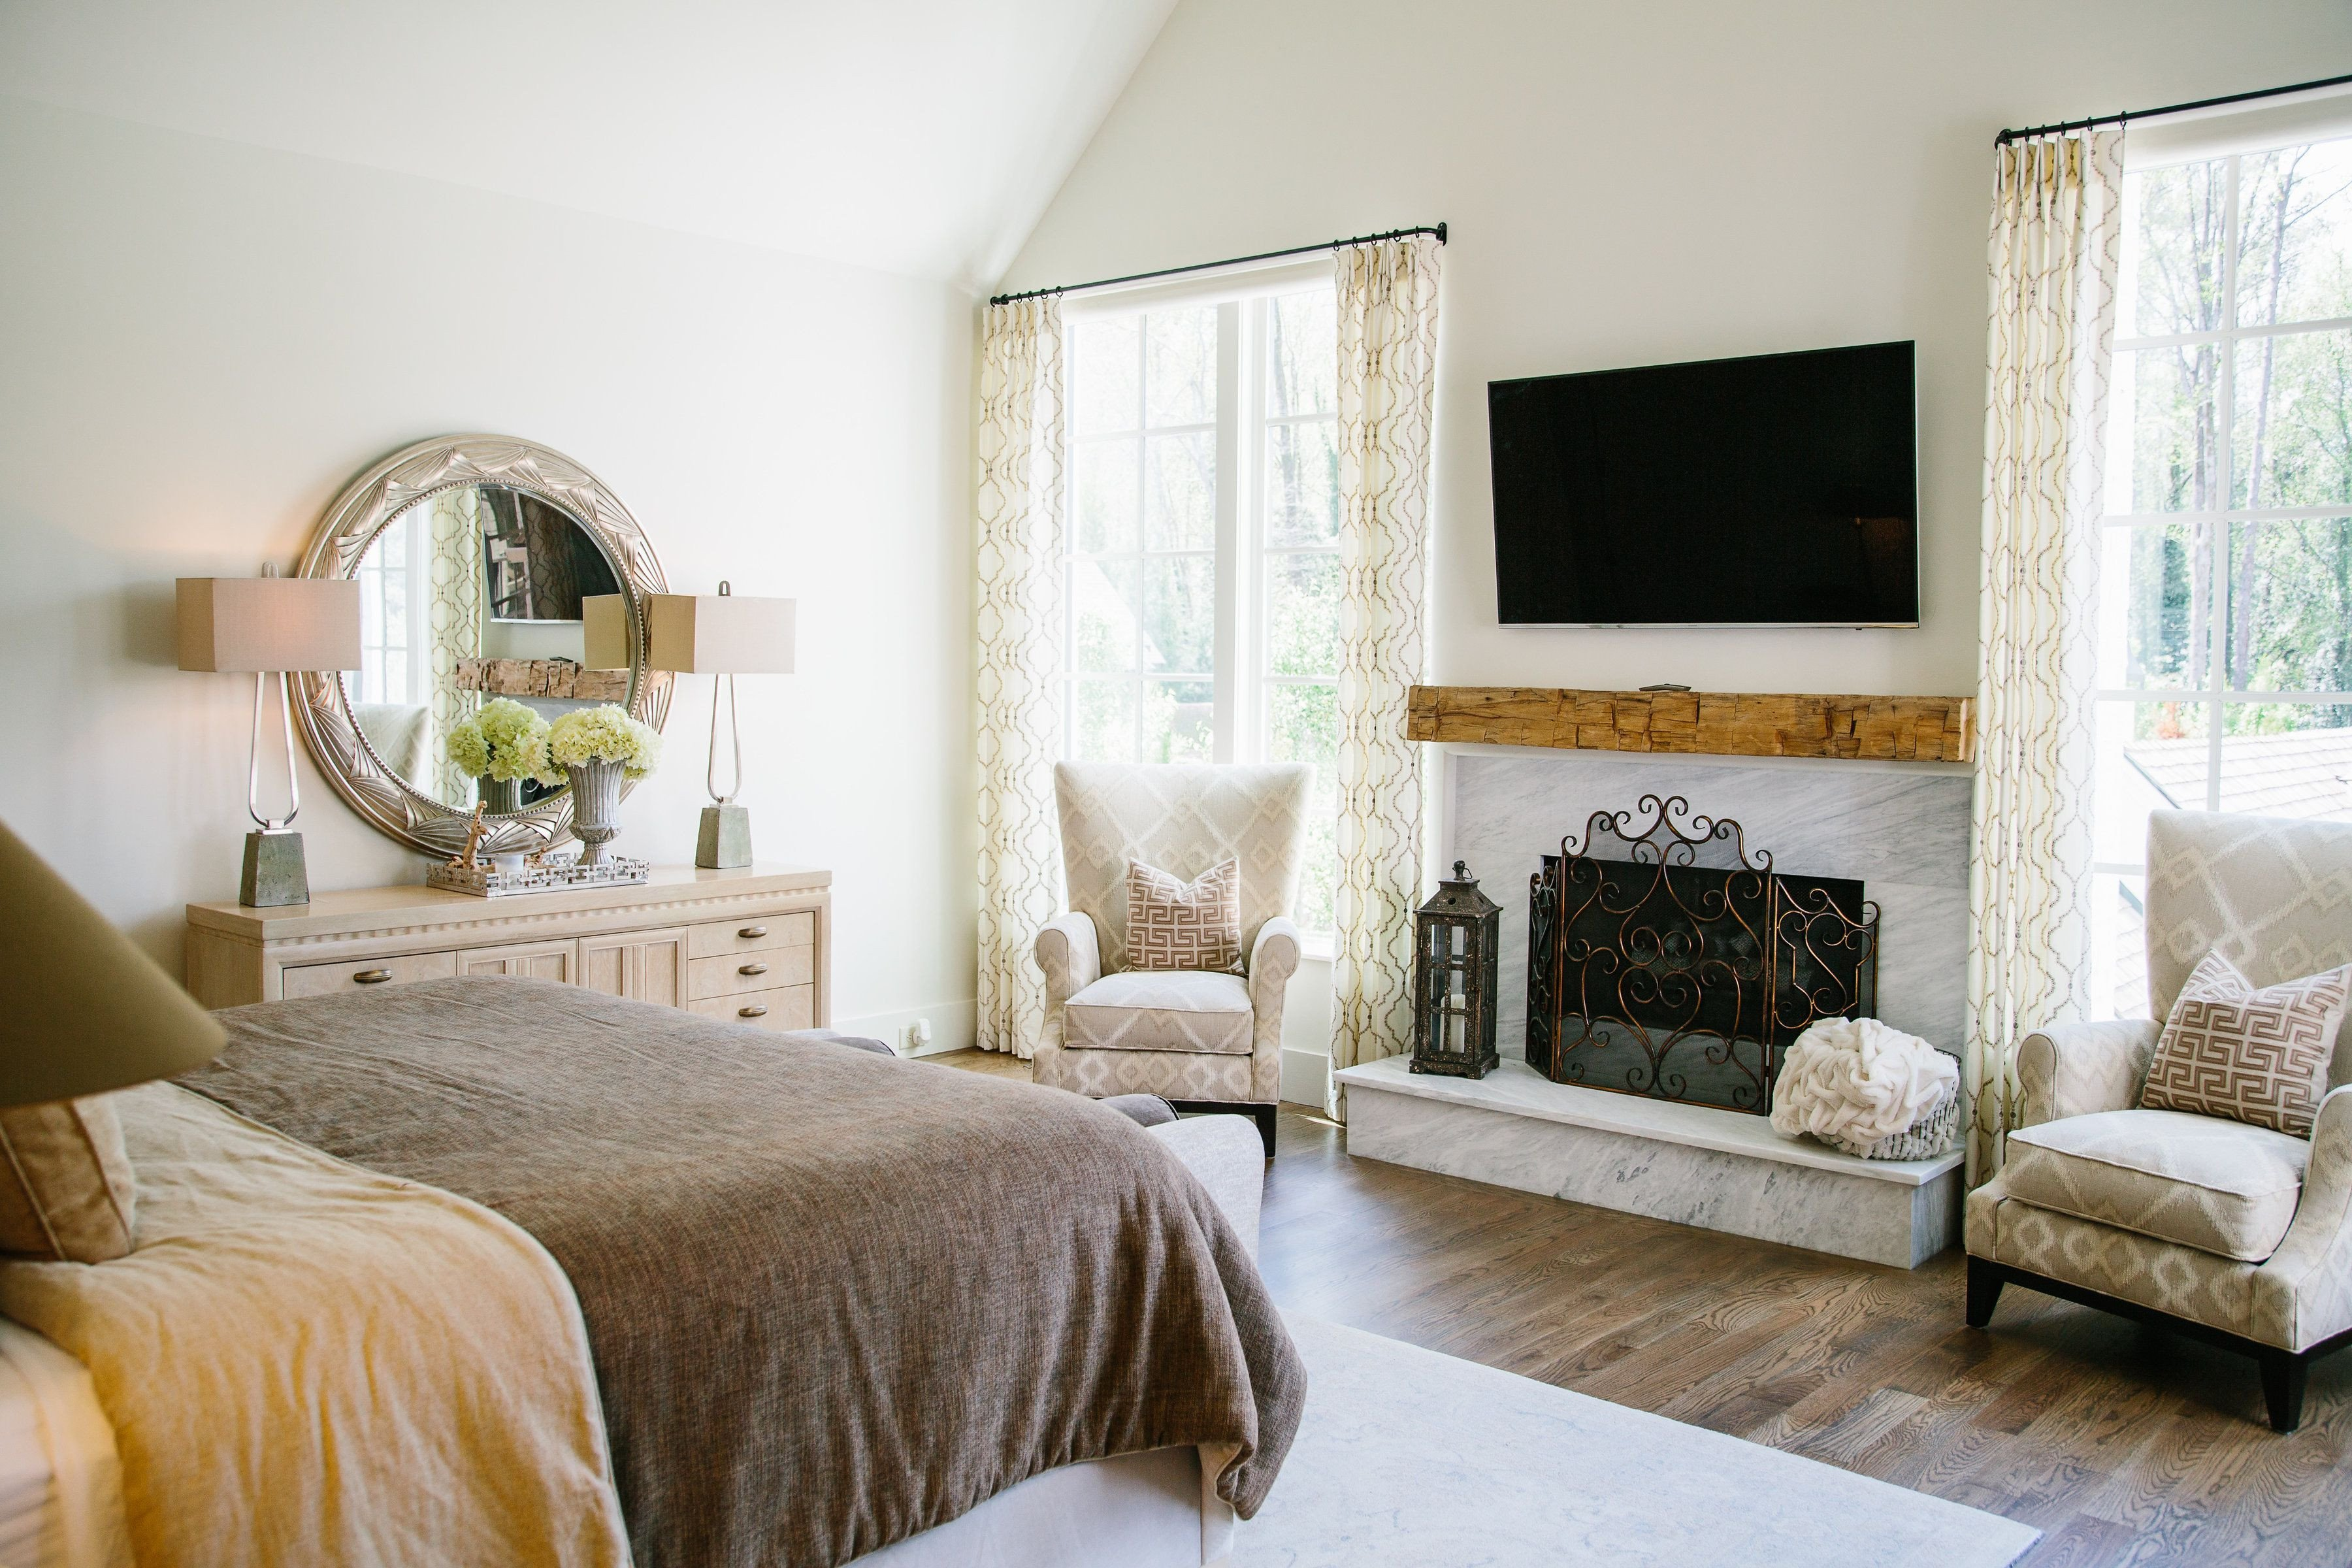 Nice Chairs for Bedroom Lovely This is What We Like to Call A Beautiful Bedroom Sanctuary